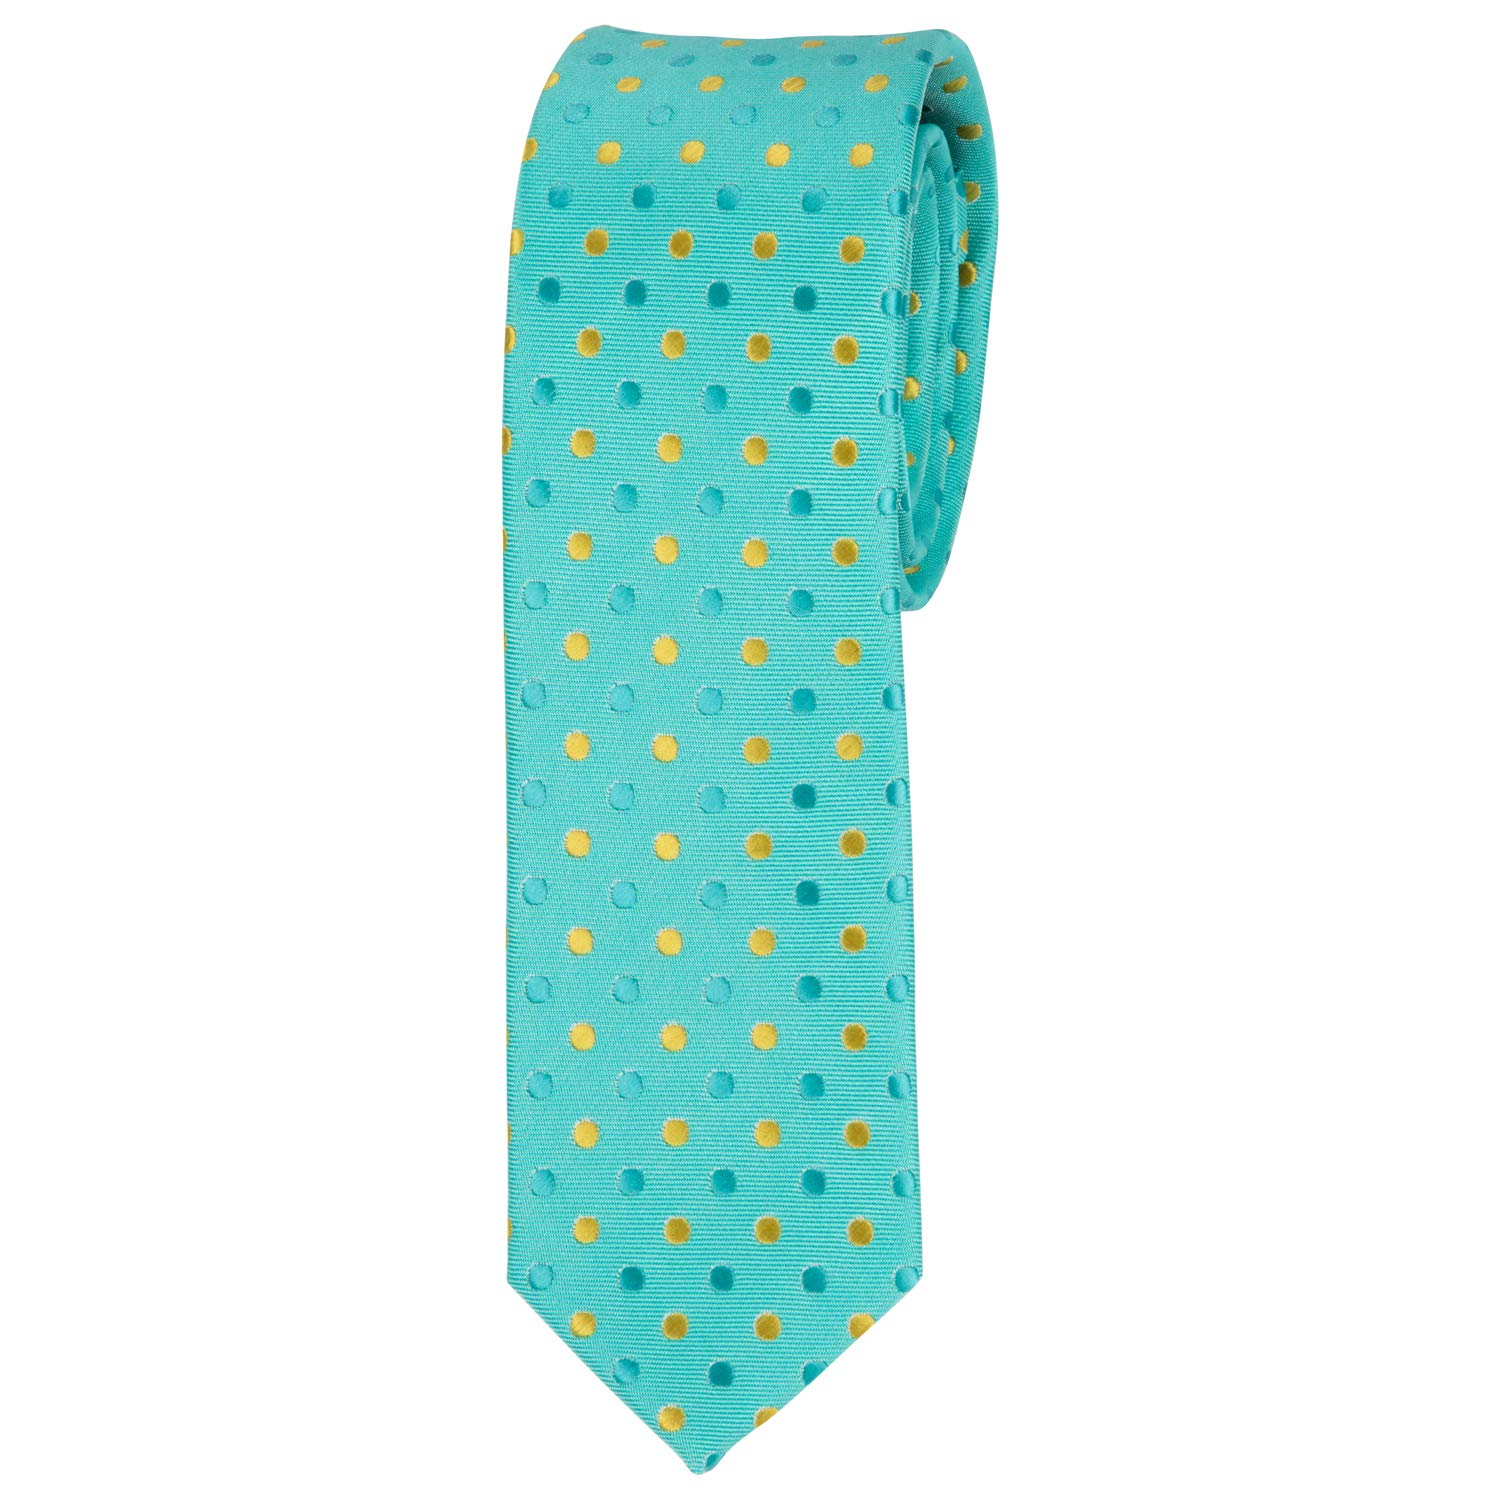 51 Casual Smooth Microfiber Necktie Ties For Boys Ages 8-14